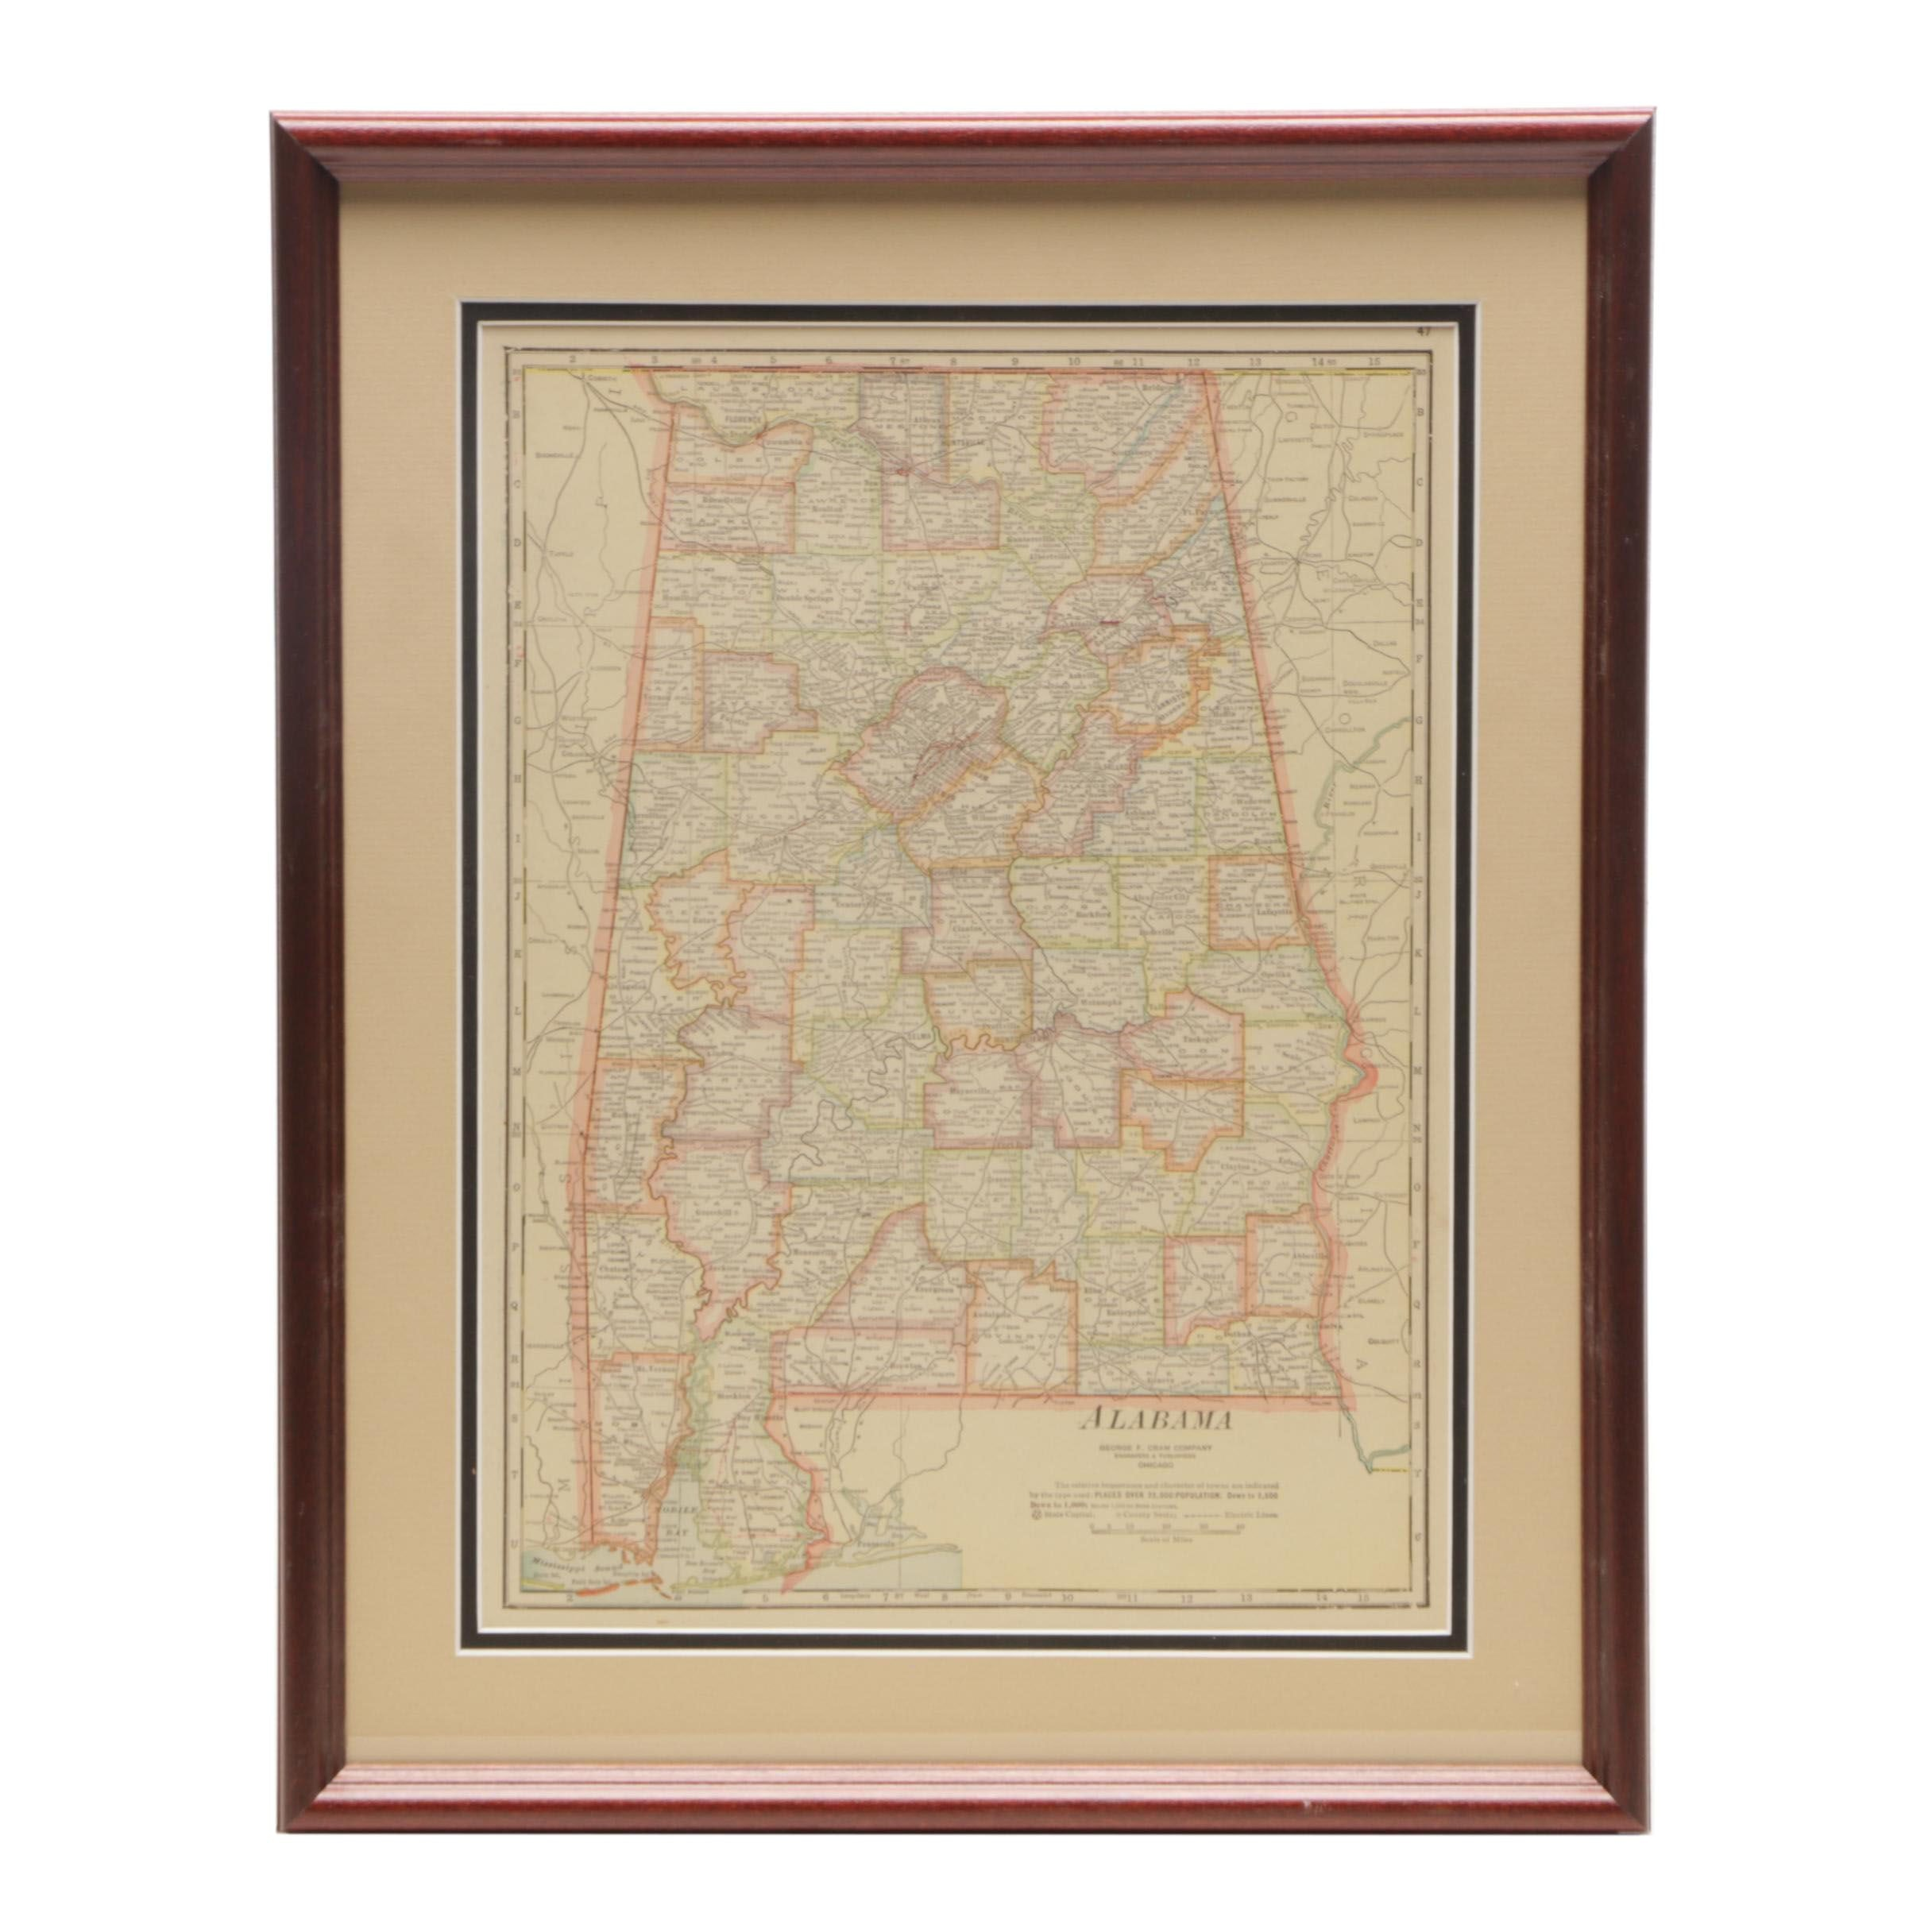 George F. Cram Company Map of Alabama